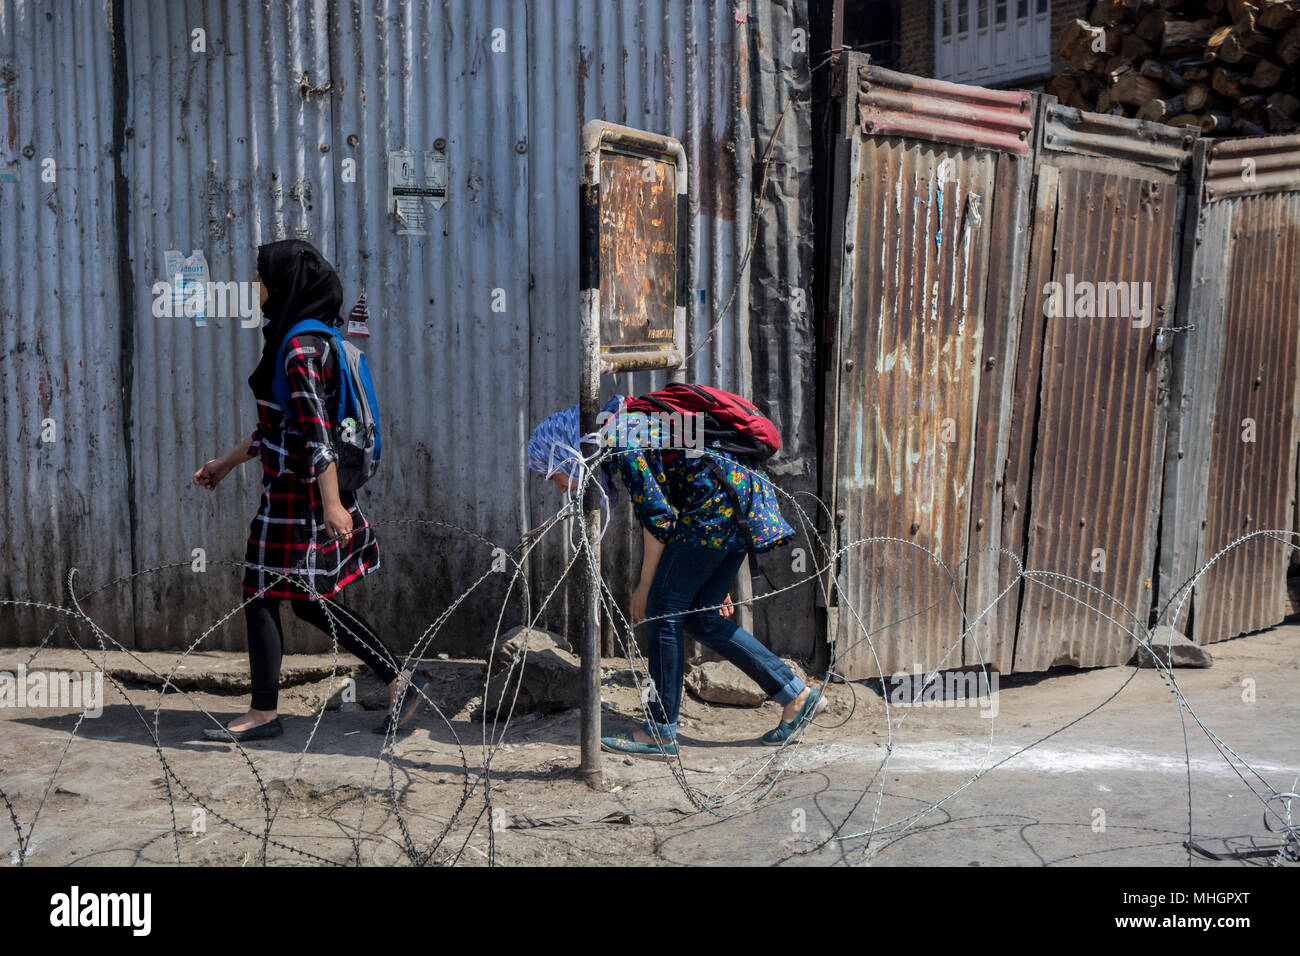 Kashmiri Muslim young girls cross a barbed wire barricade laid by Indian armed forces during restrictions in Downtown area of Srinagar city, summer capital of Jammu and Kashmir. Indian authorities on Tuesday imposed restrictions in many parts of Srinagar city  to prevent  clashes and protests in the valley following a protest call by the JRL (Joint Resistance Leadership) against killing of a student Shahid Ashraf Dar and two local rebels Sameer Ahmad and Aqib Wani by Indian armed forces and injuring more than 50 innocent unarmed people by using bullets and pellets and unleashing a reign of ter - Stock Image